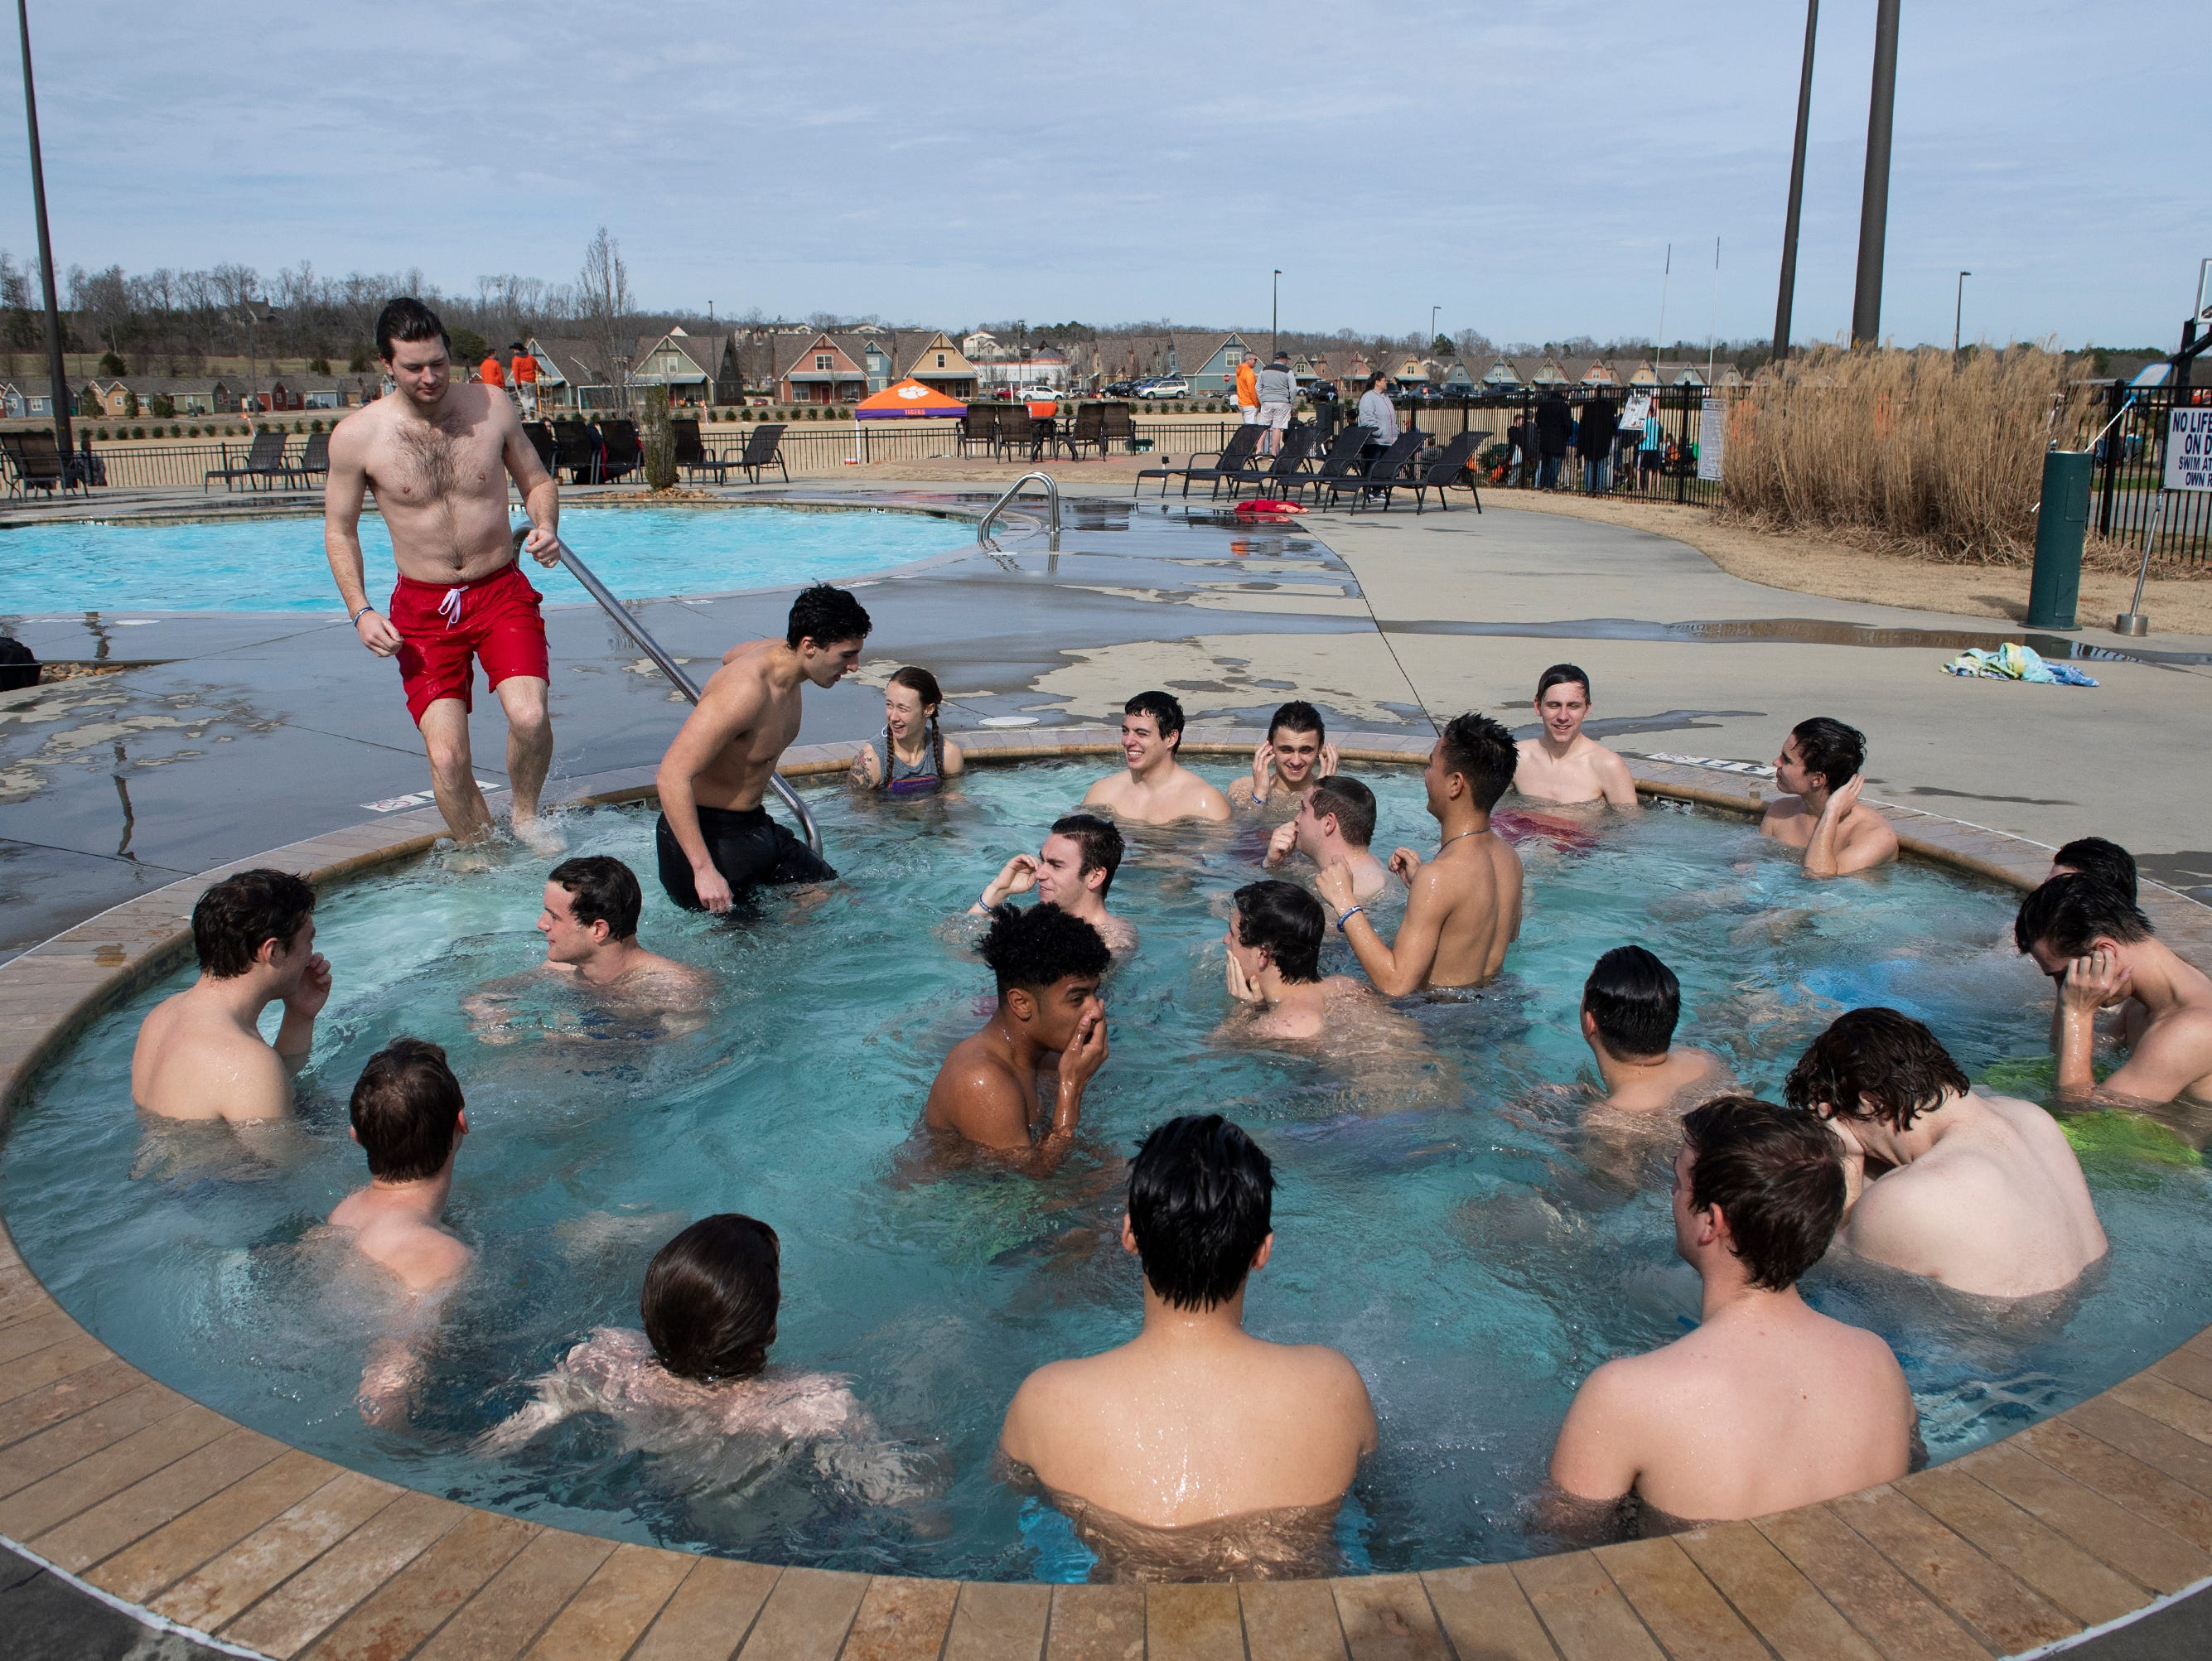 Participants in the 2019 Tiger Paw Polar Plunge warm up in the hot tub after jumping in to the cold pool at The Pier housing complex in Seneca Saturday, Feb. 9, 2019.